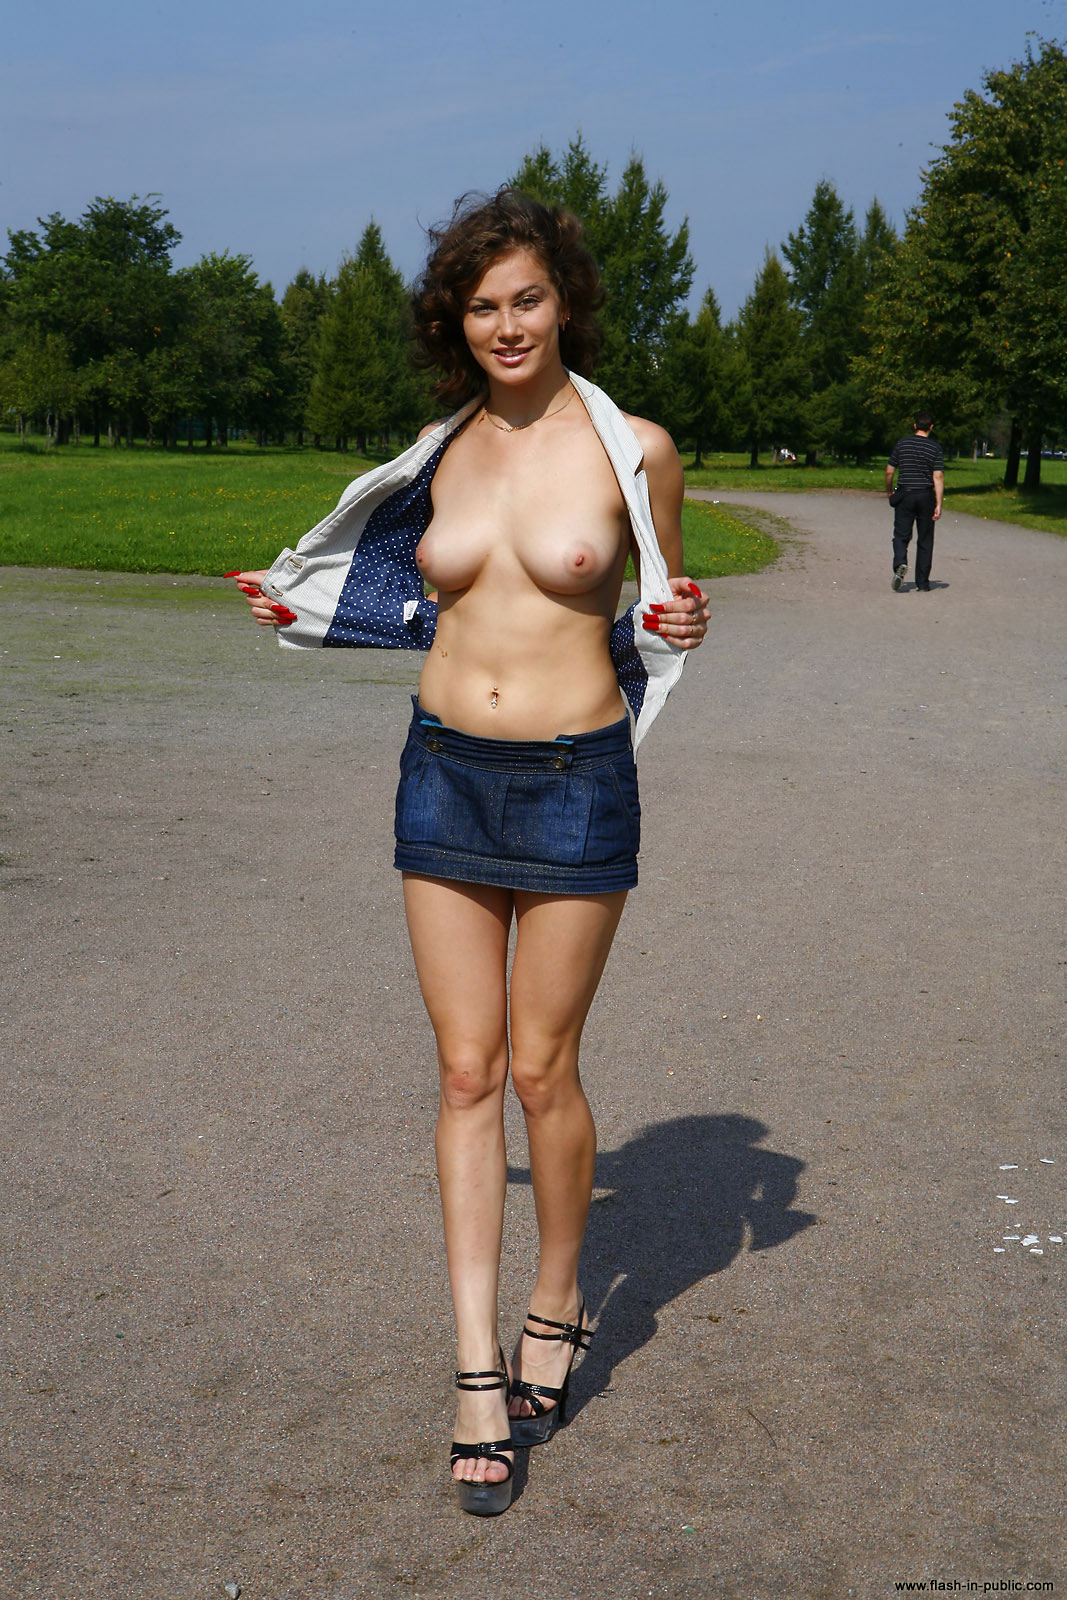 marianna-h-nude-park-flash-in-public-19